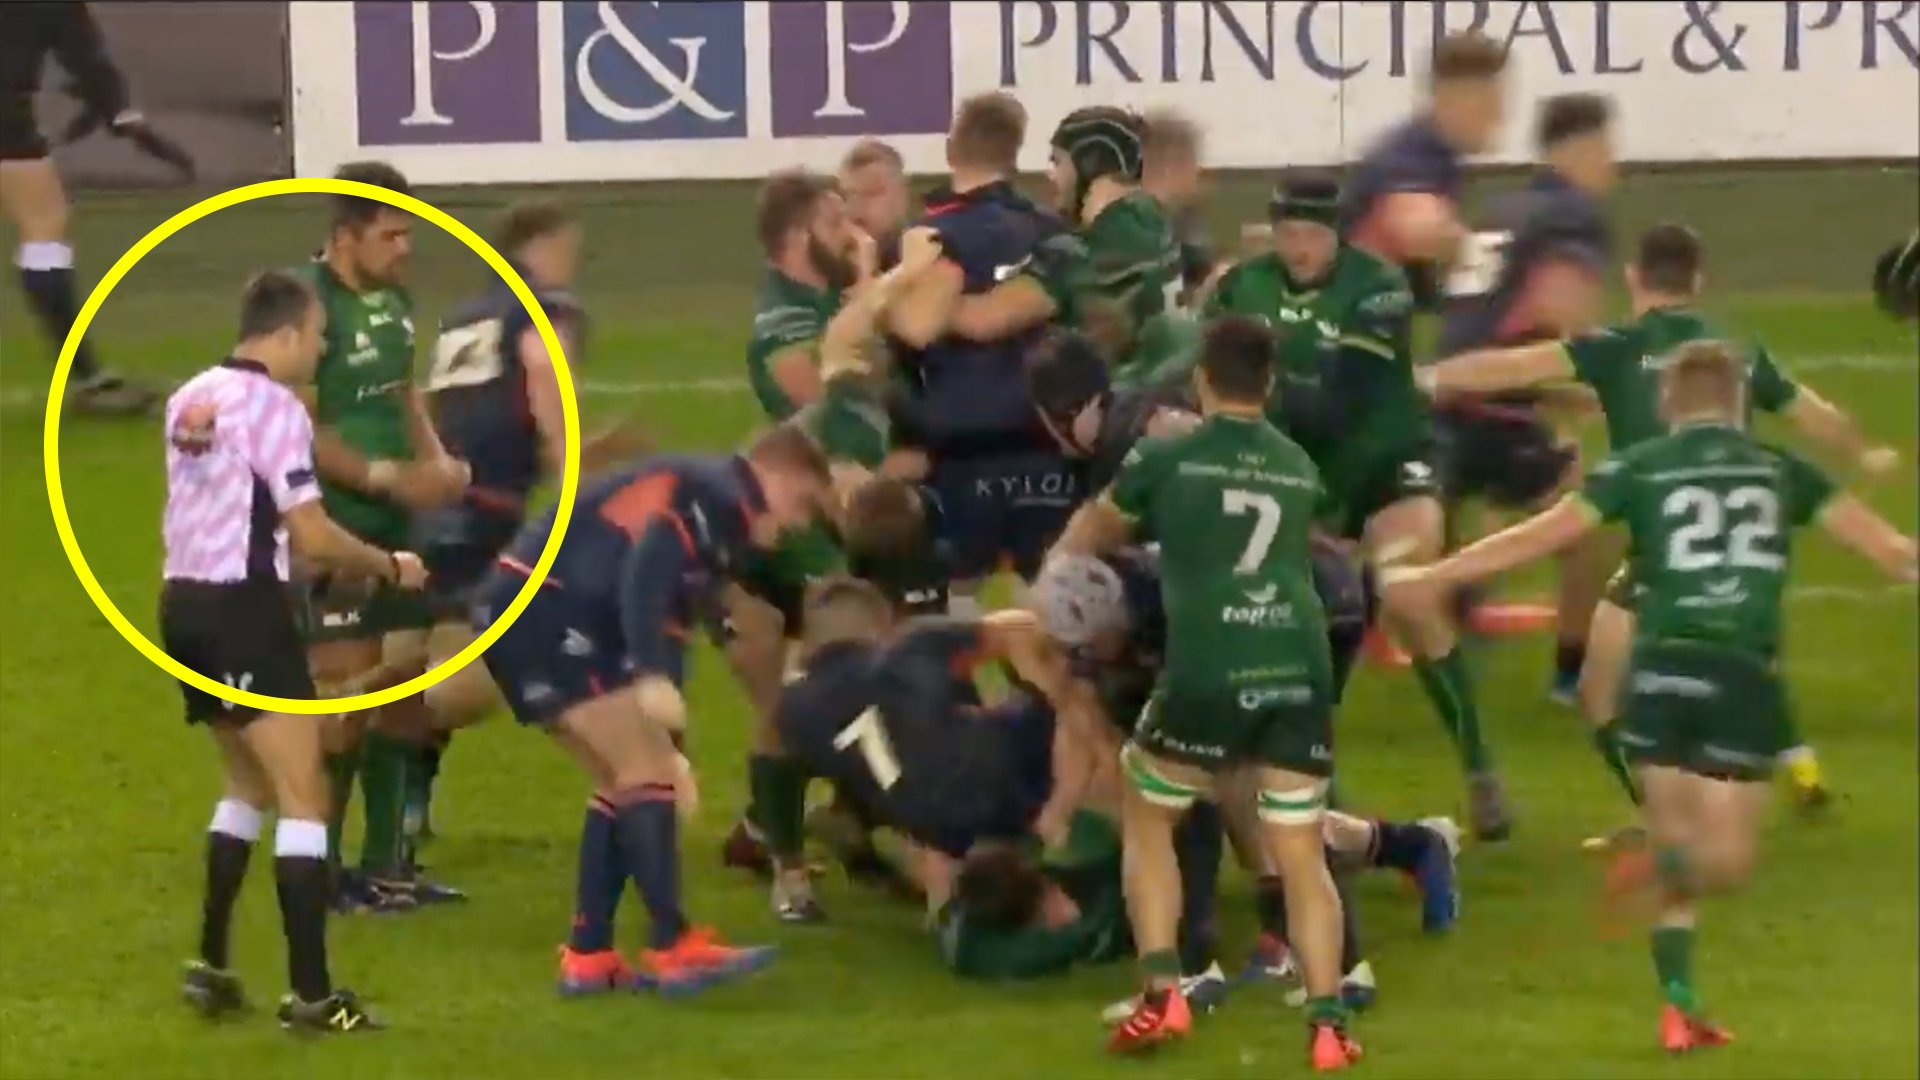 Rugby match descends into chaos as referee struggles to control brawling players